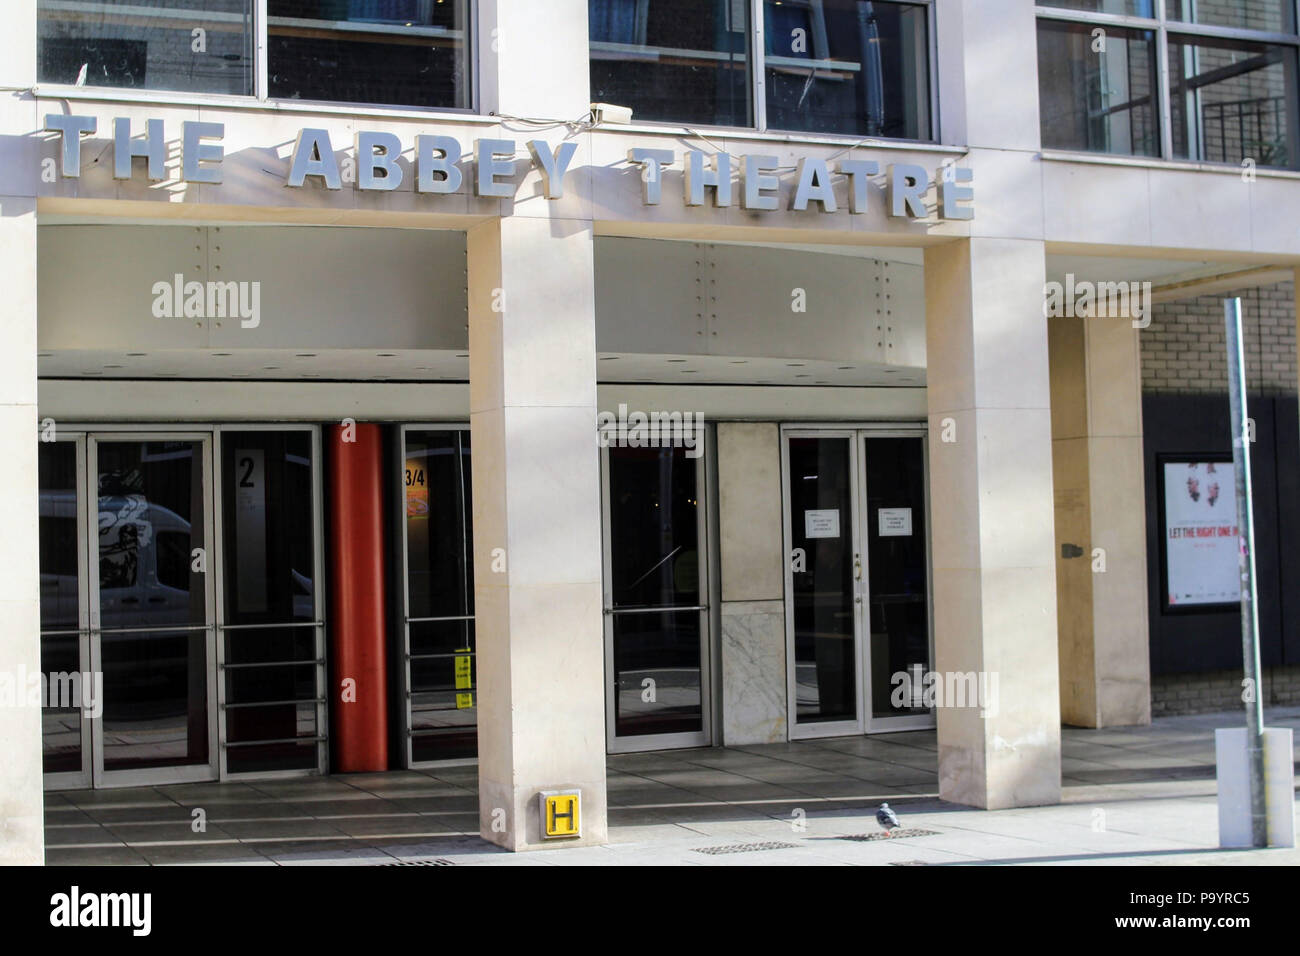 The entrance to The Abbey Theatre in Dublin Ireland. The theatre known as The National Theatre of Ireland opened in 1904. - Stock Image